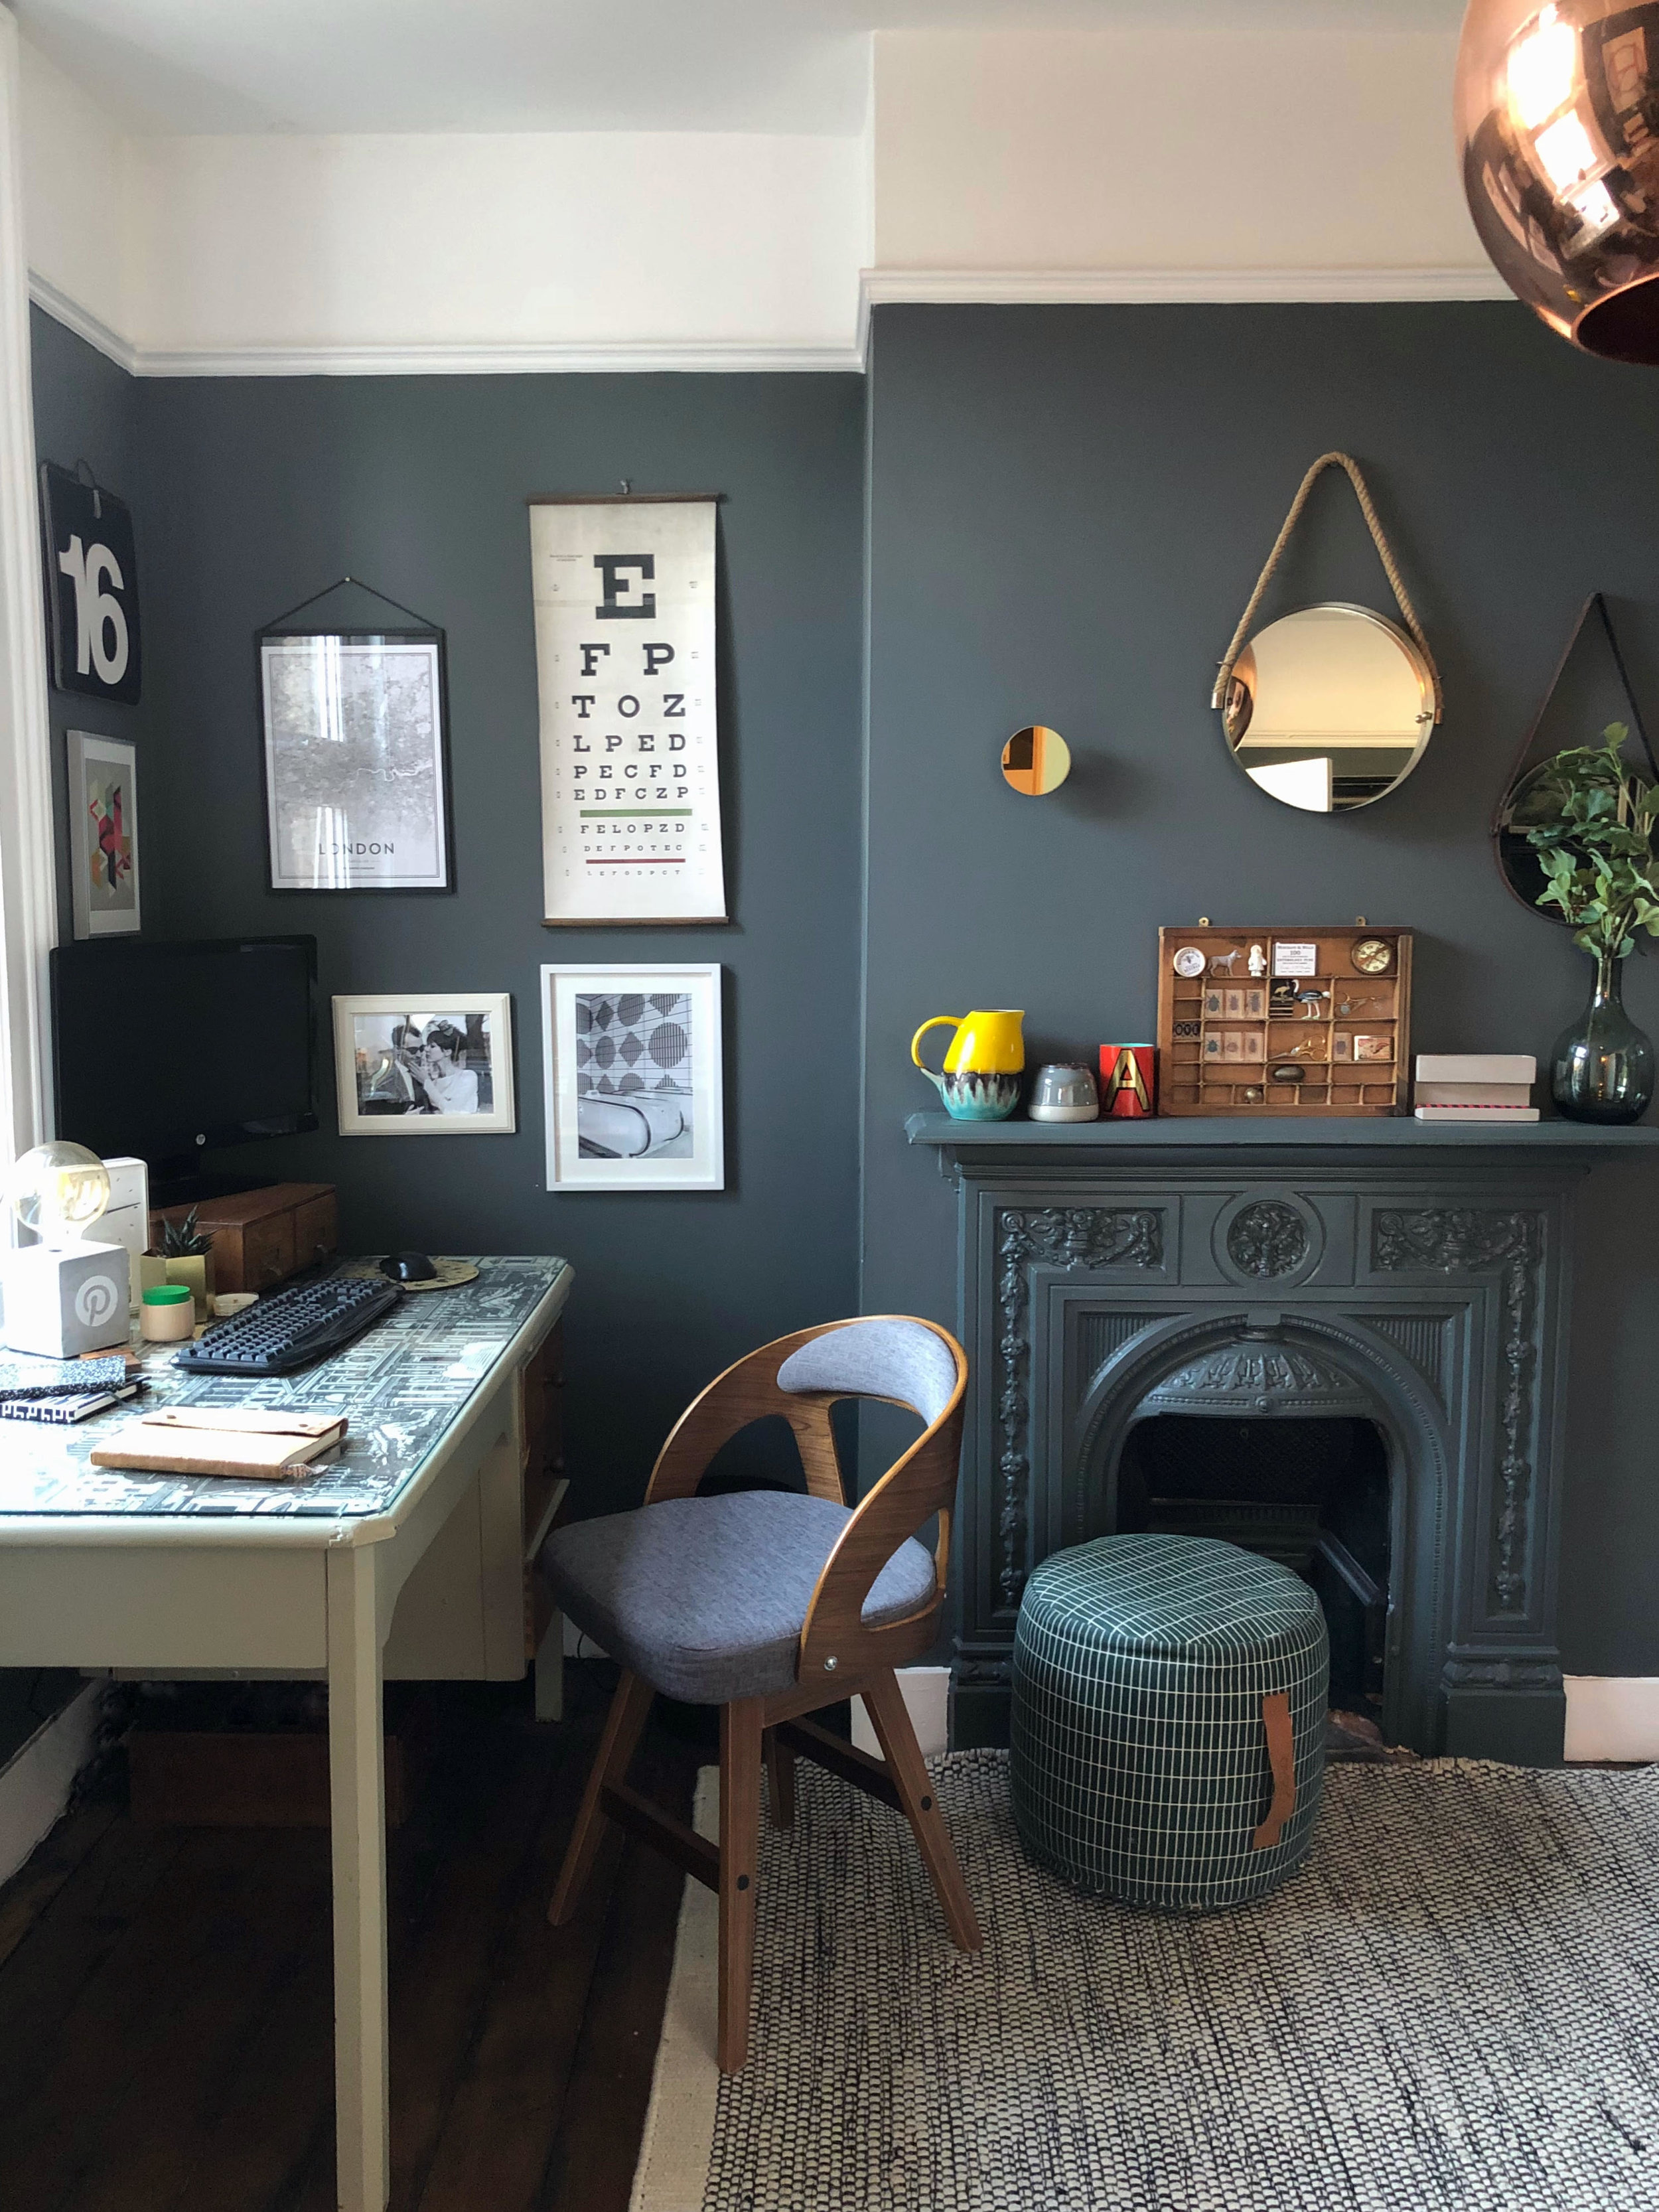 Home office study modernist downpipe farrow ball eclectic vintage mid-century copy.jpg